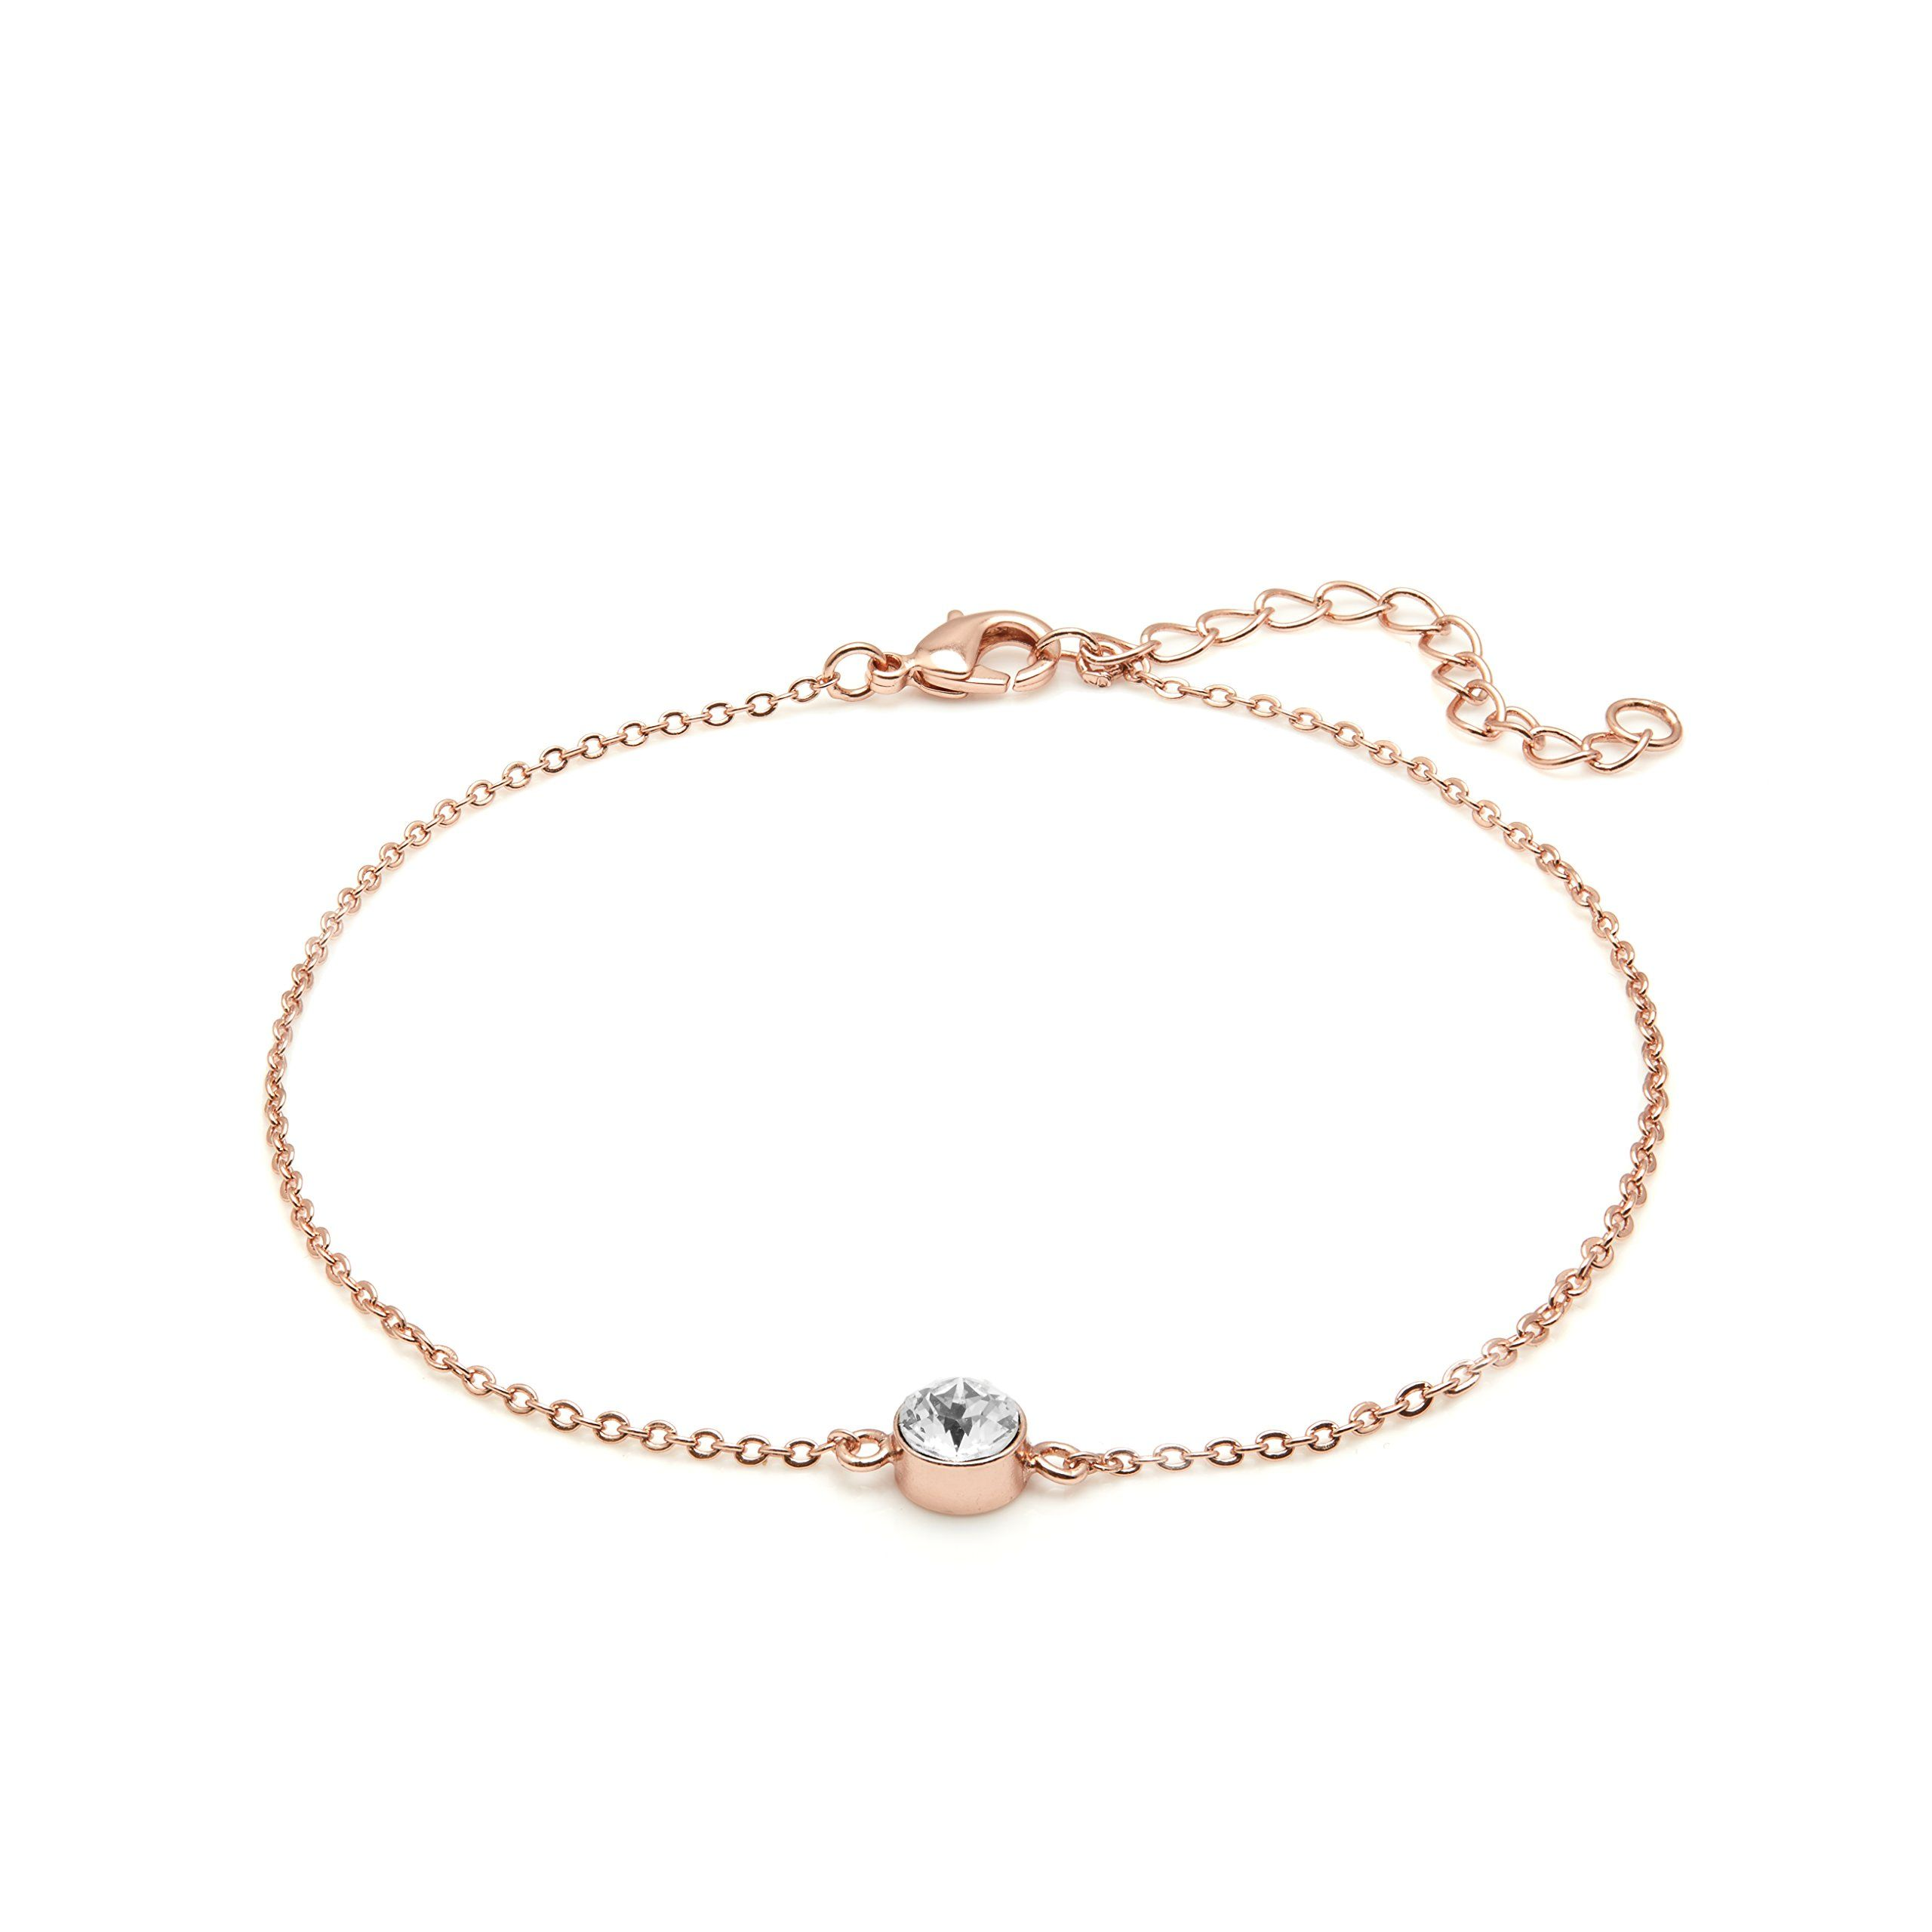 inch ring anklet a comes update pin your gold crafted with yellow this look saturn comfortable closure karat in read singapore spring